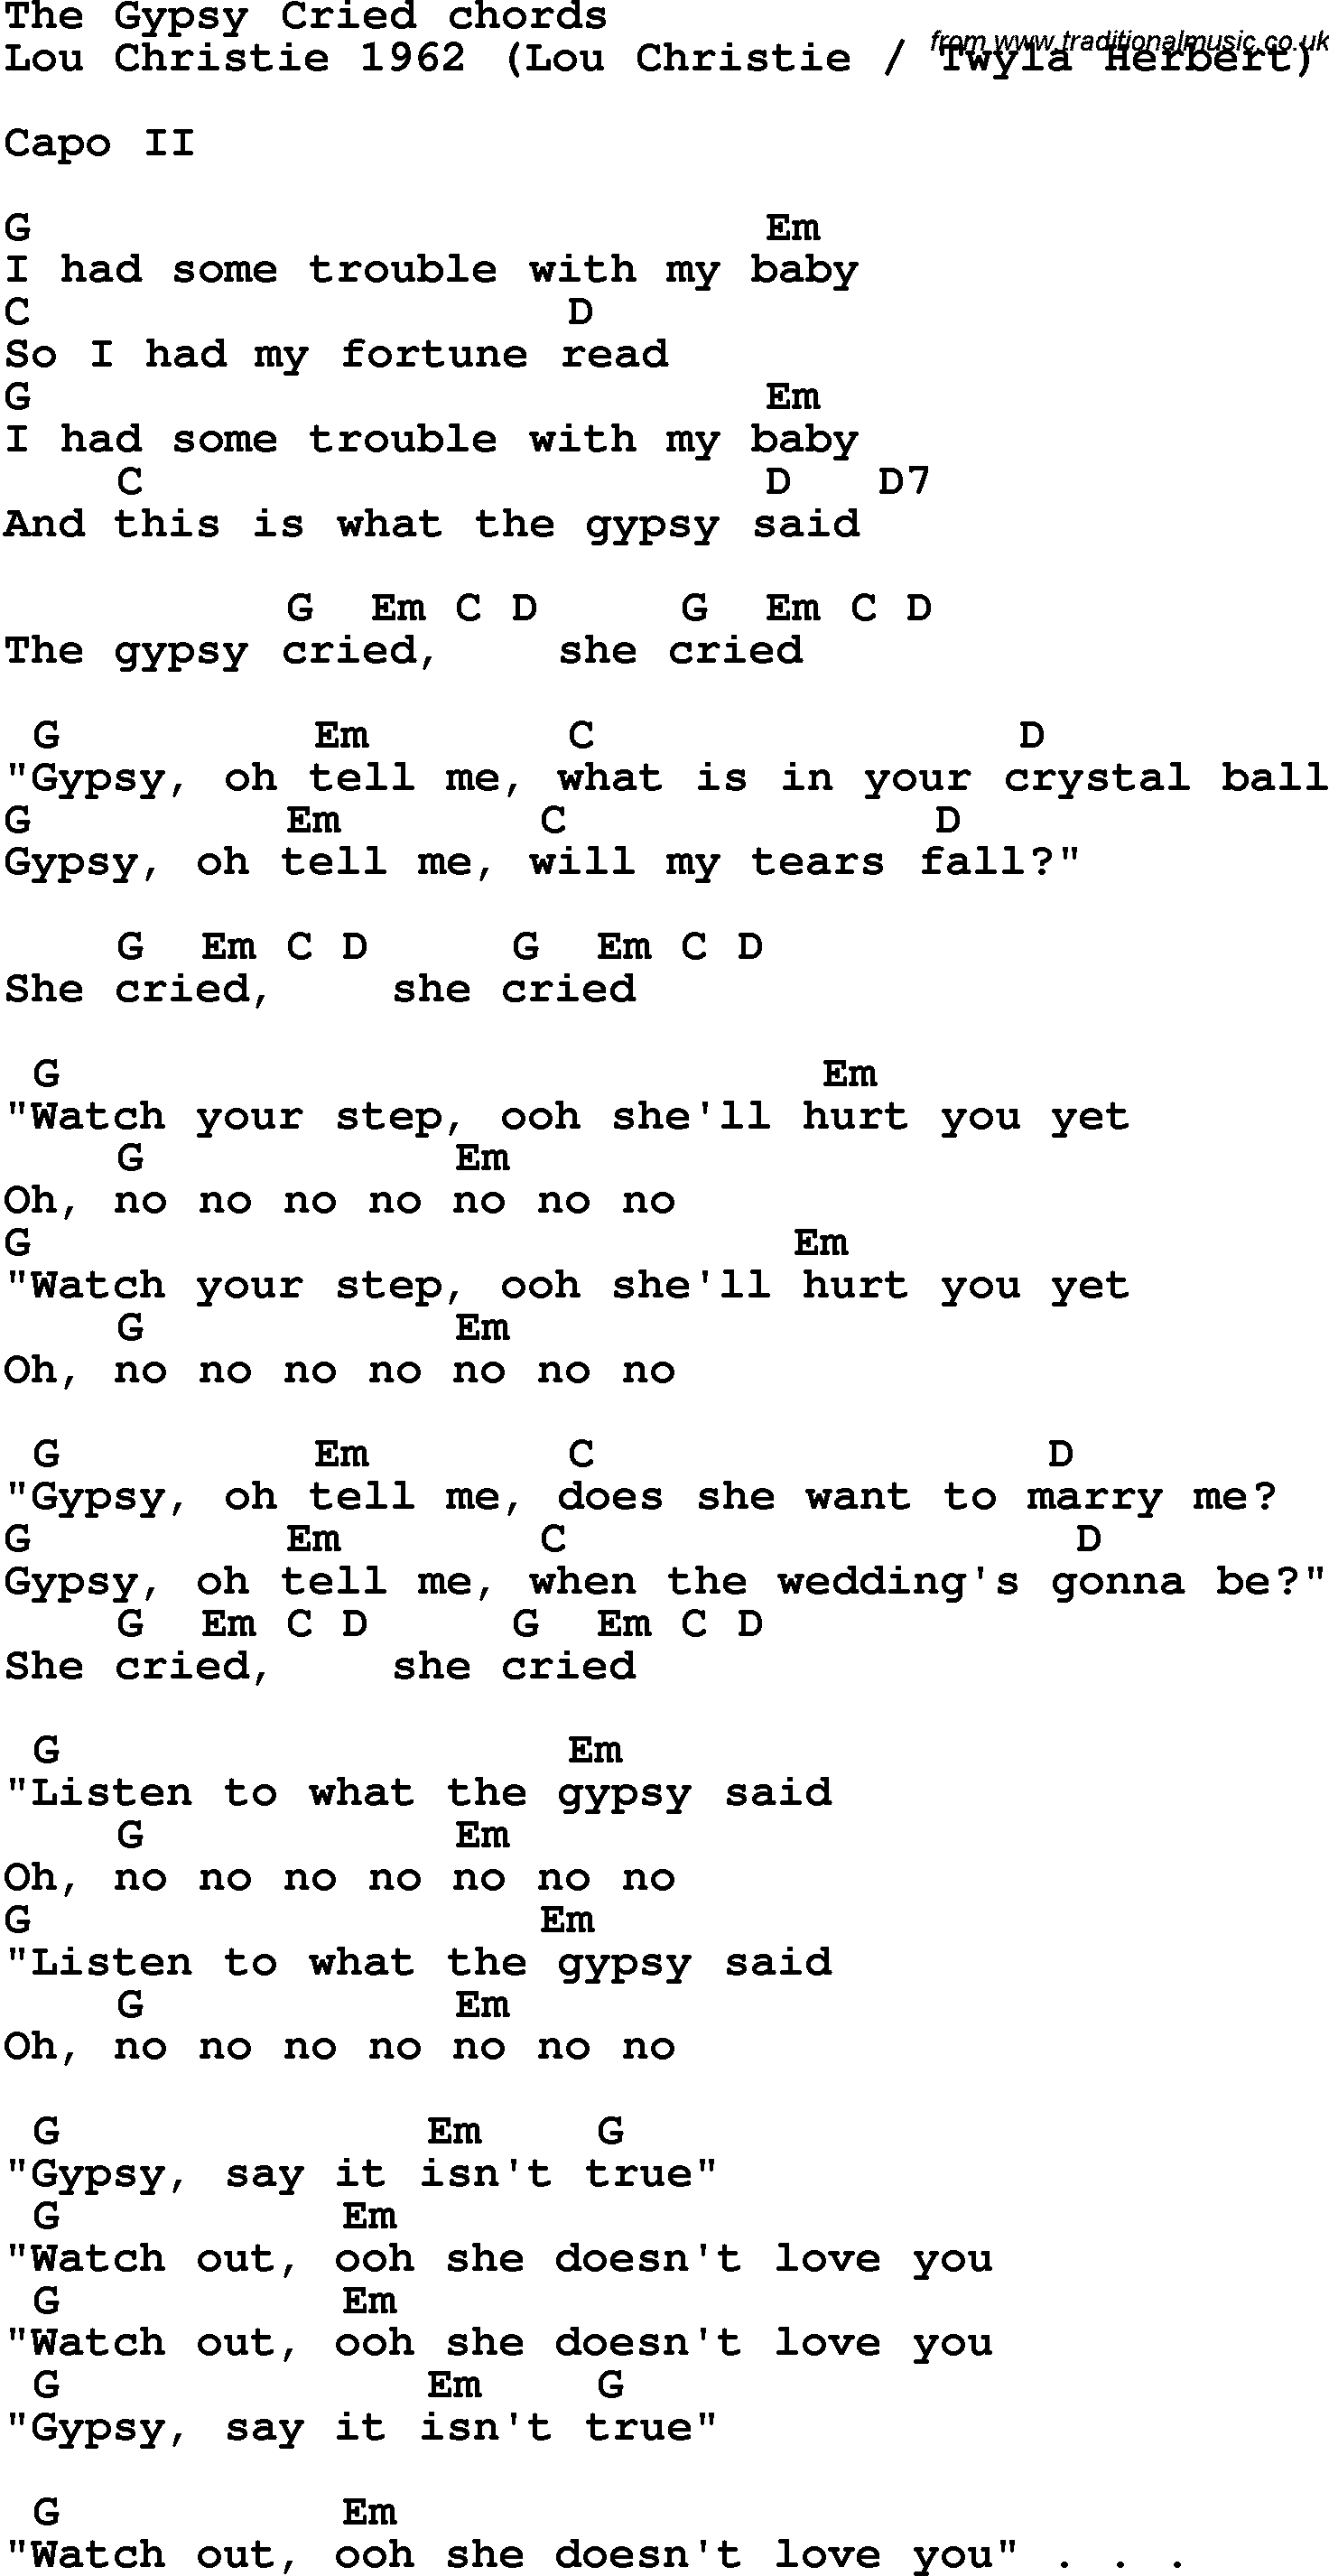 Song Lyrics With Guitar Chords For The Gypsy Cried Lou Christie 1962